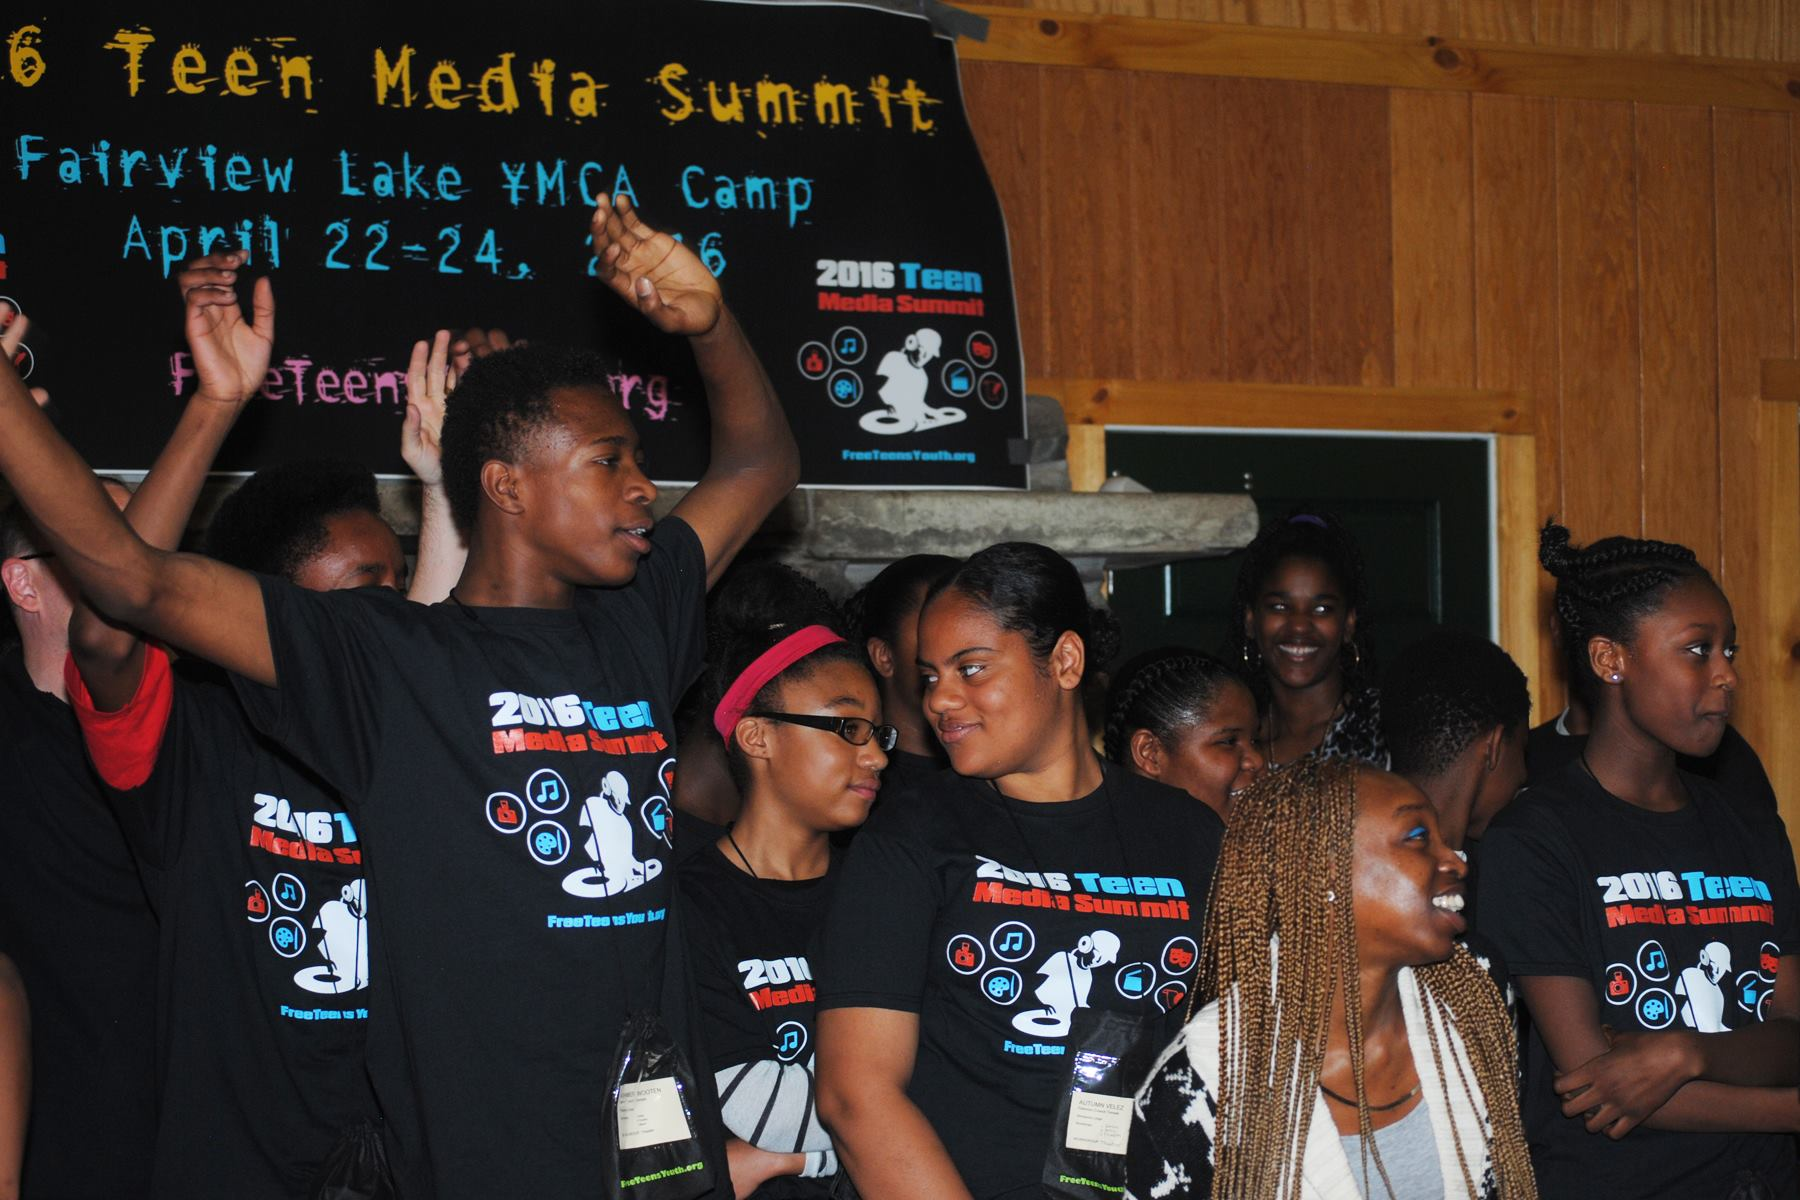 Teen Media Summit 2016 - Free Teens Youth - Changing Minds, Transforming Lives